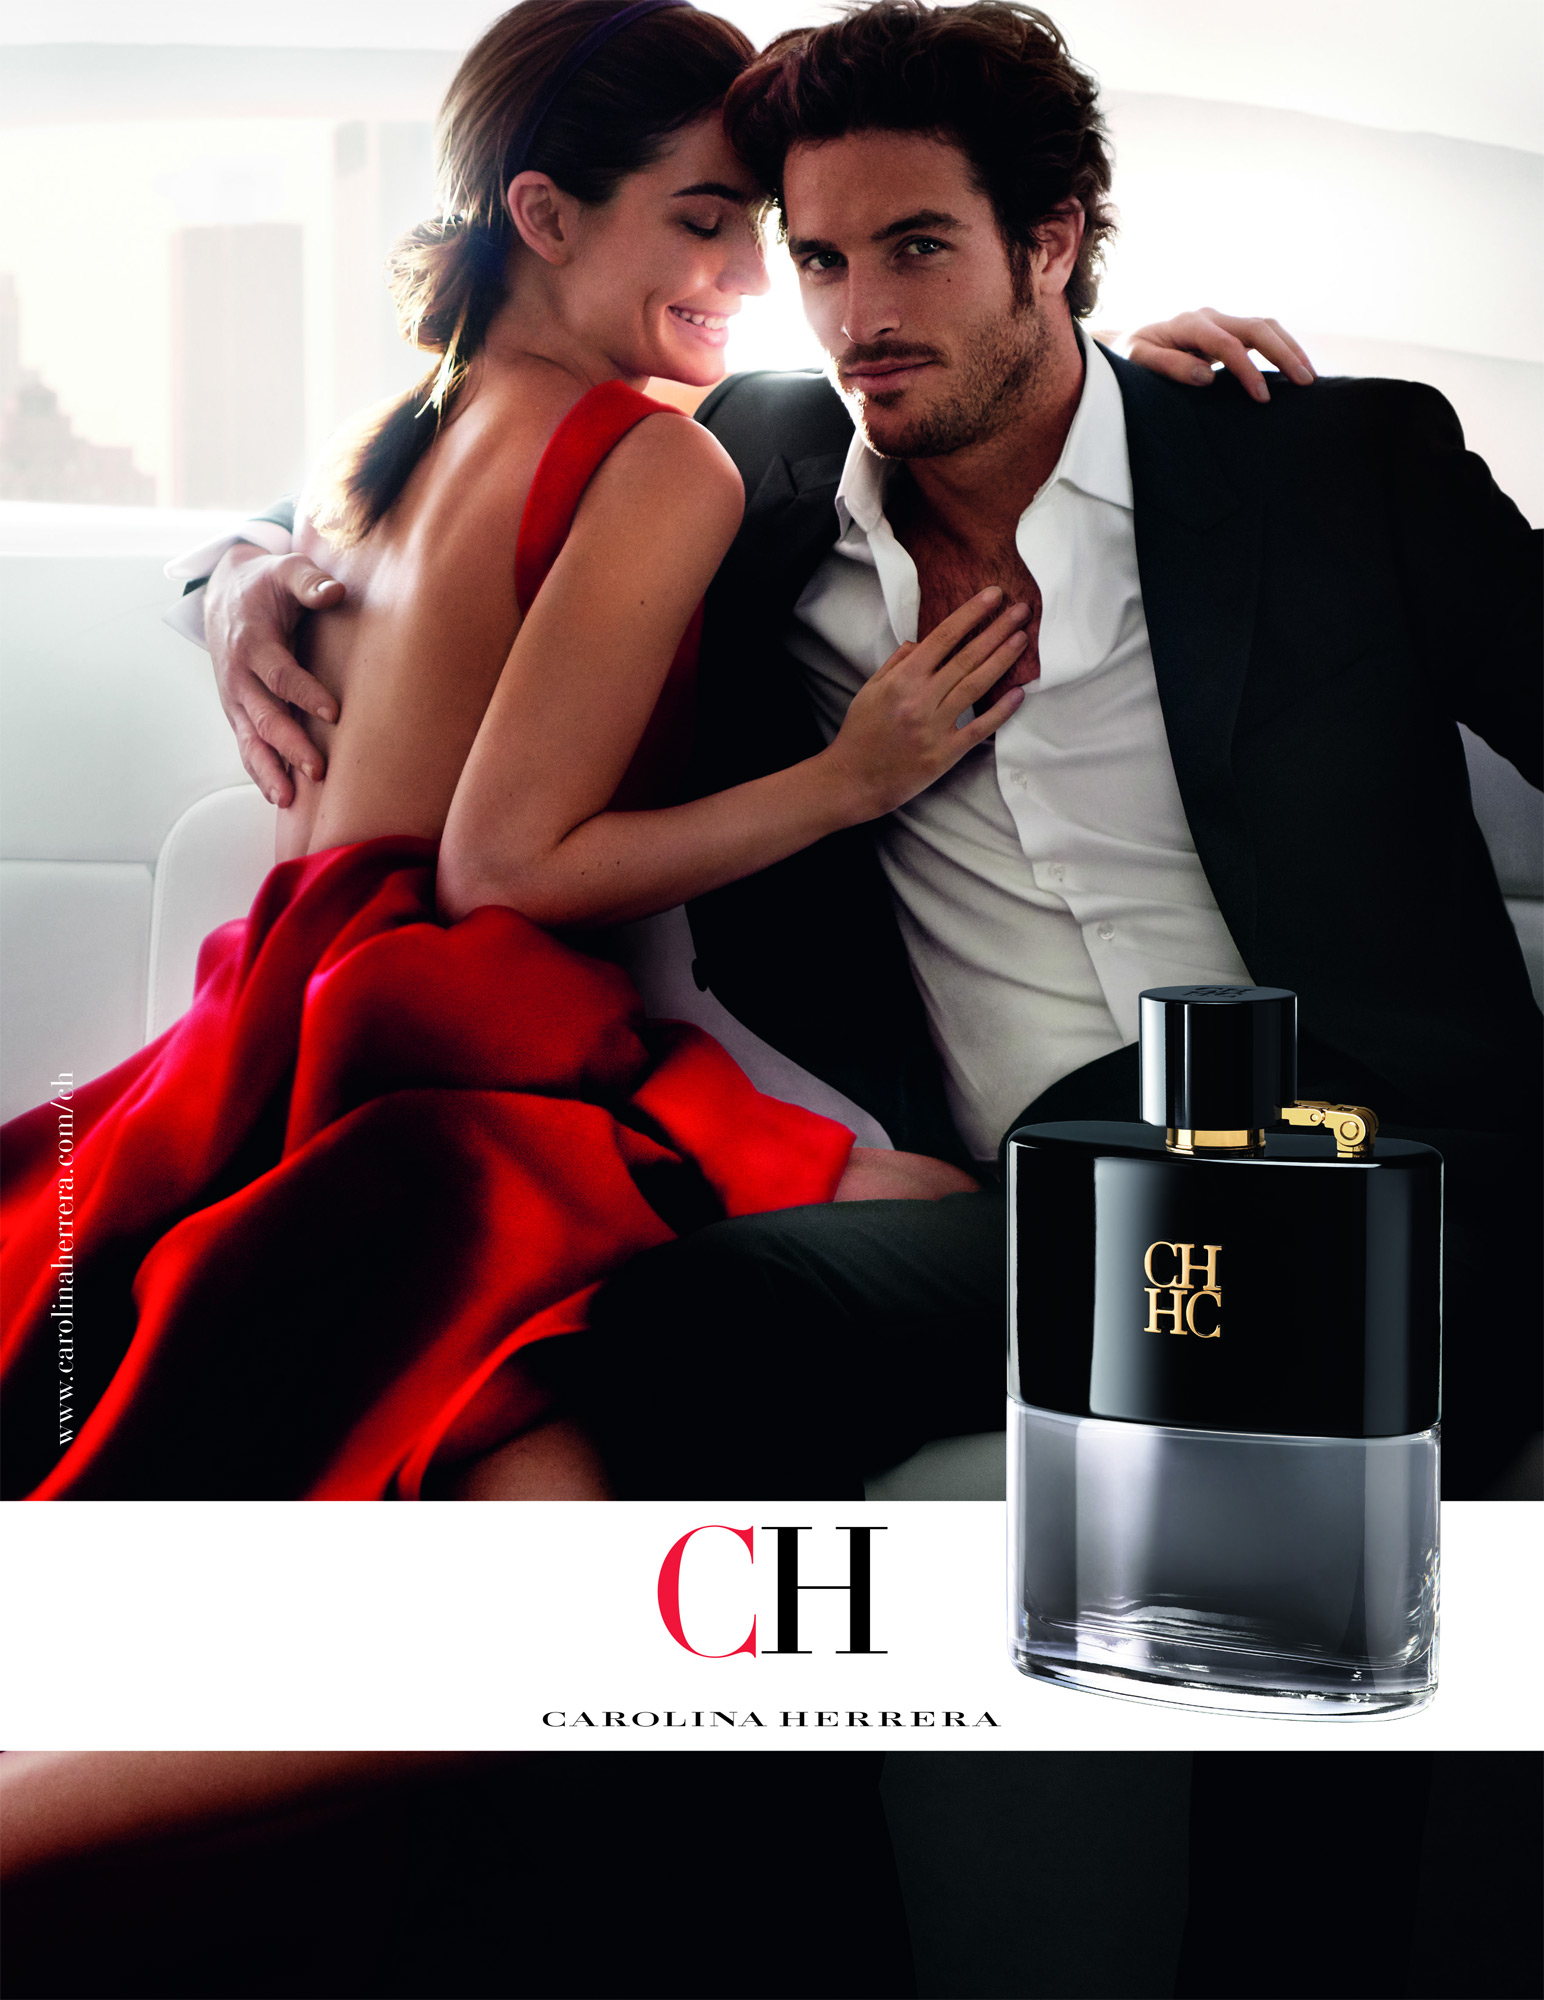 Carolina Herrera Men